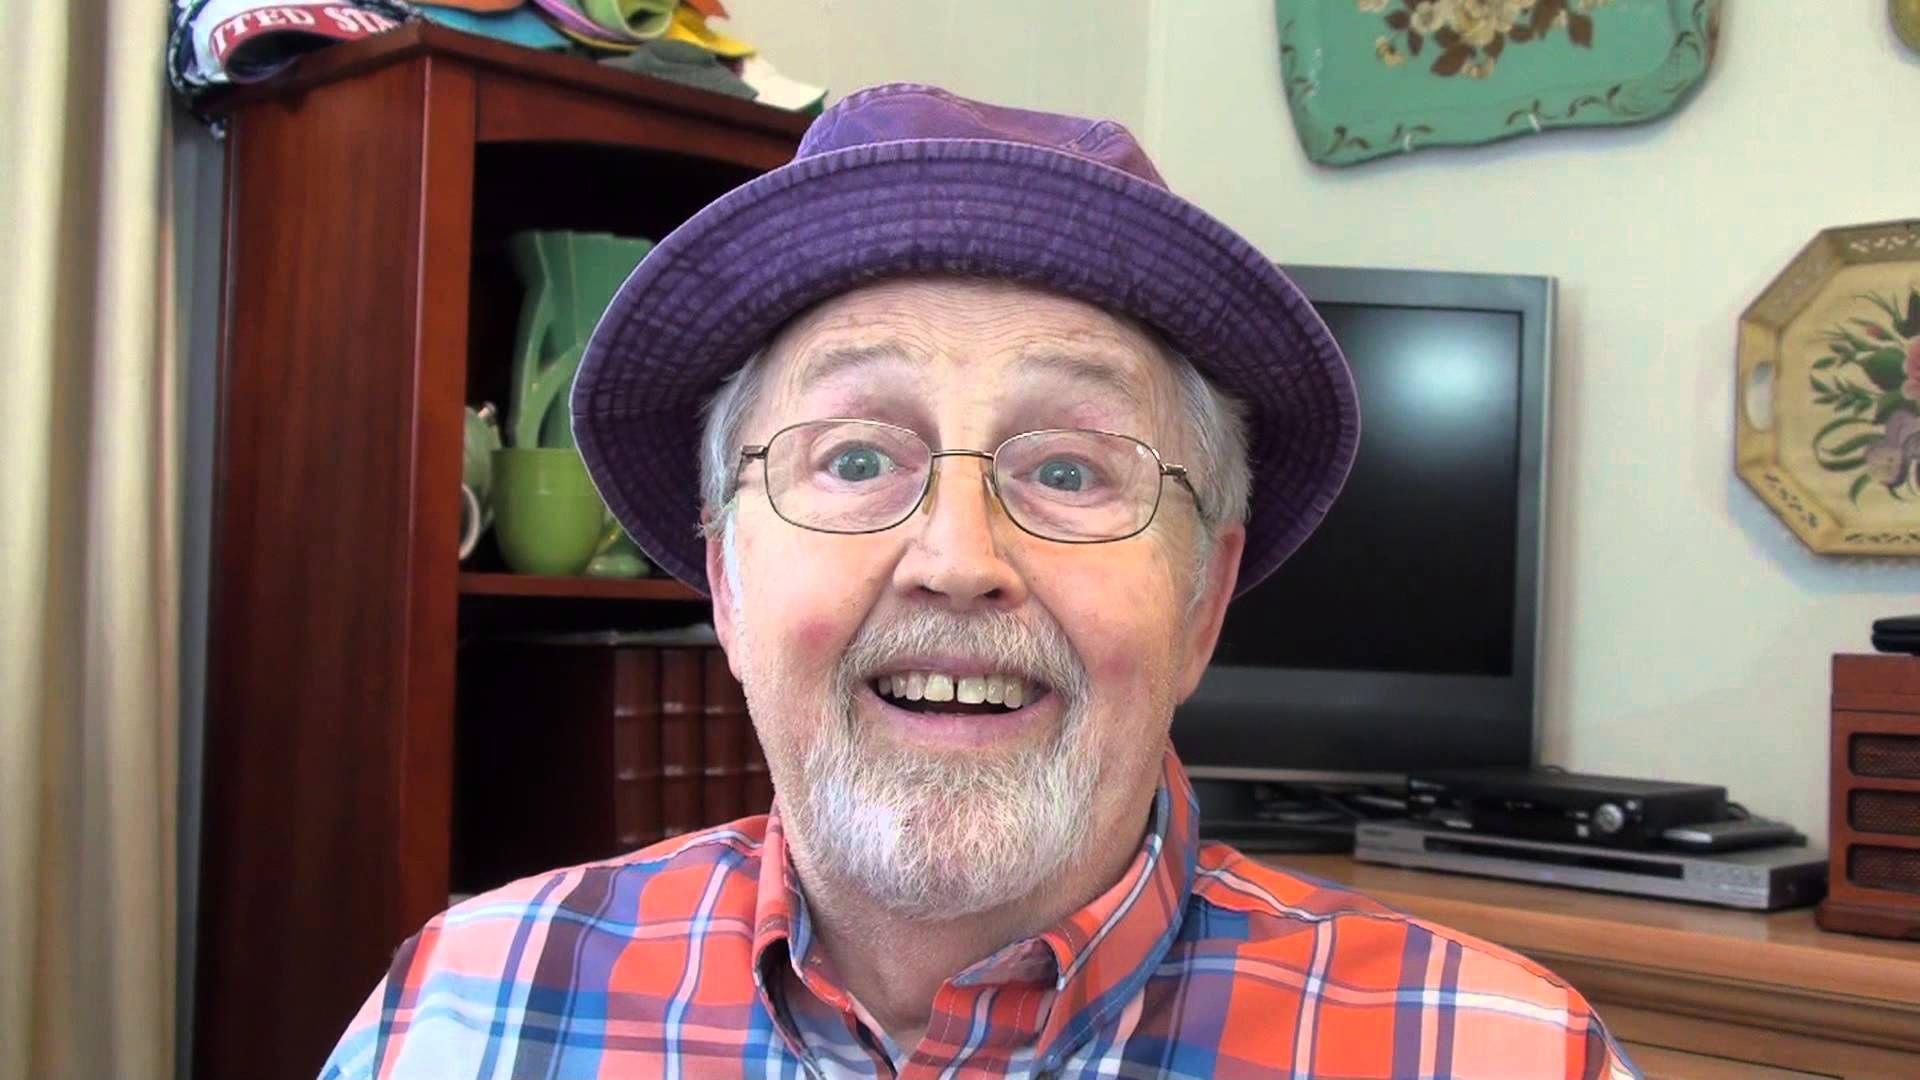 #Old #Man #Steve is talking #British and being #cheeky